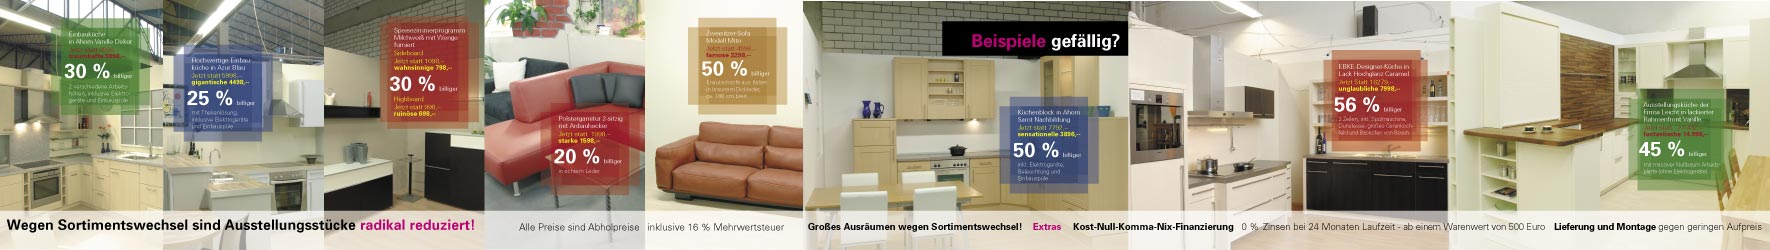 moebel ott markt satte rabatte gewinnspiel. Black Bedroom Furniture Sets. Home Design Ideas